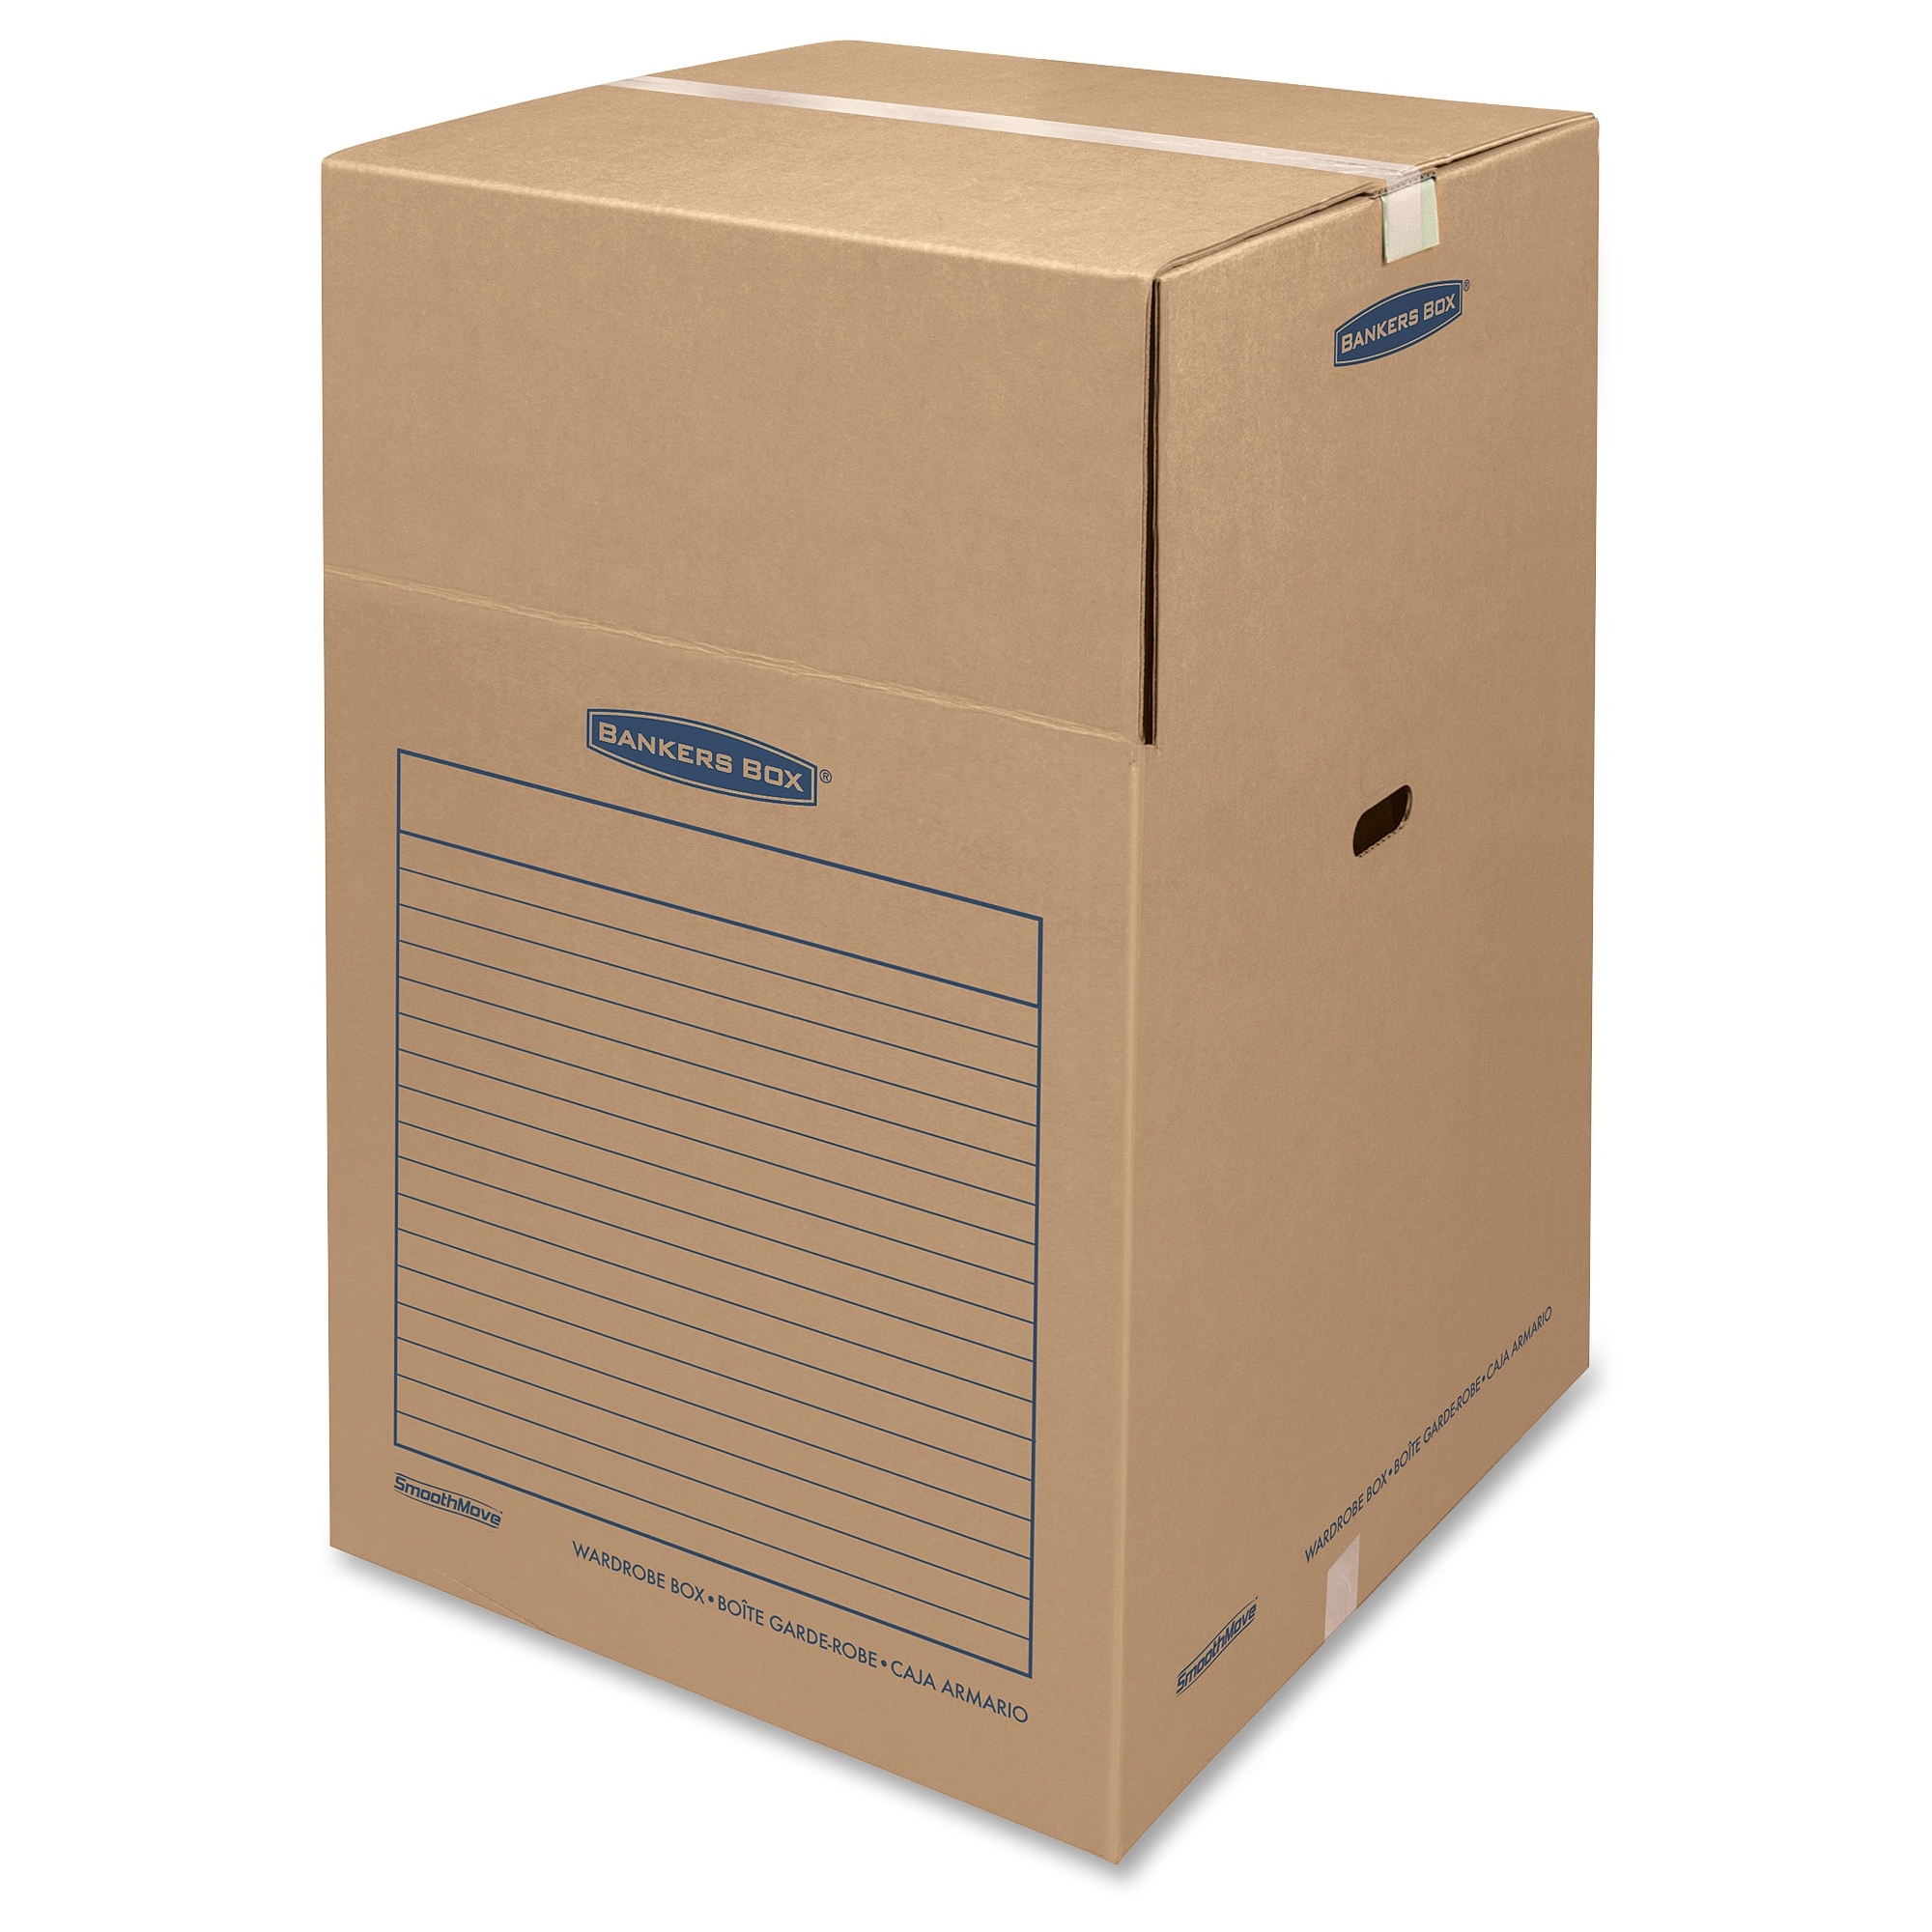 SmoothMove BankersBox Wardrobe Boxes, Large, 3 Count